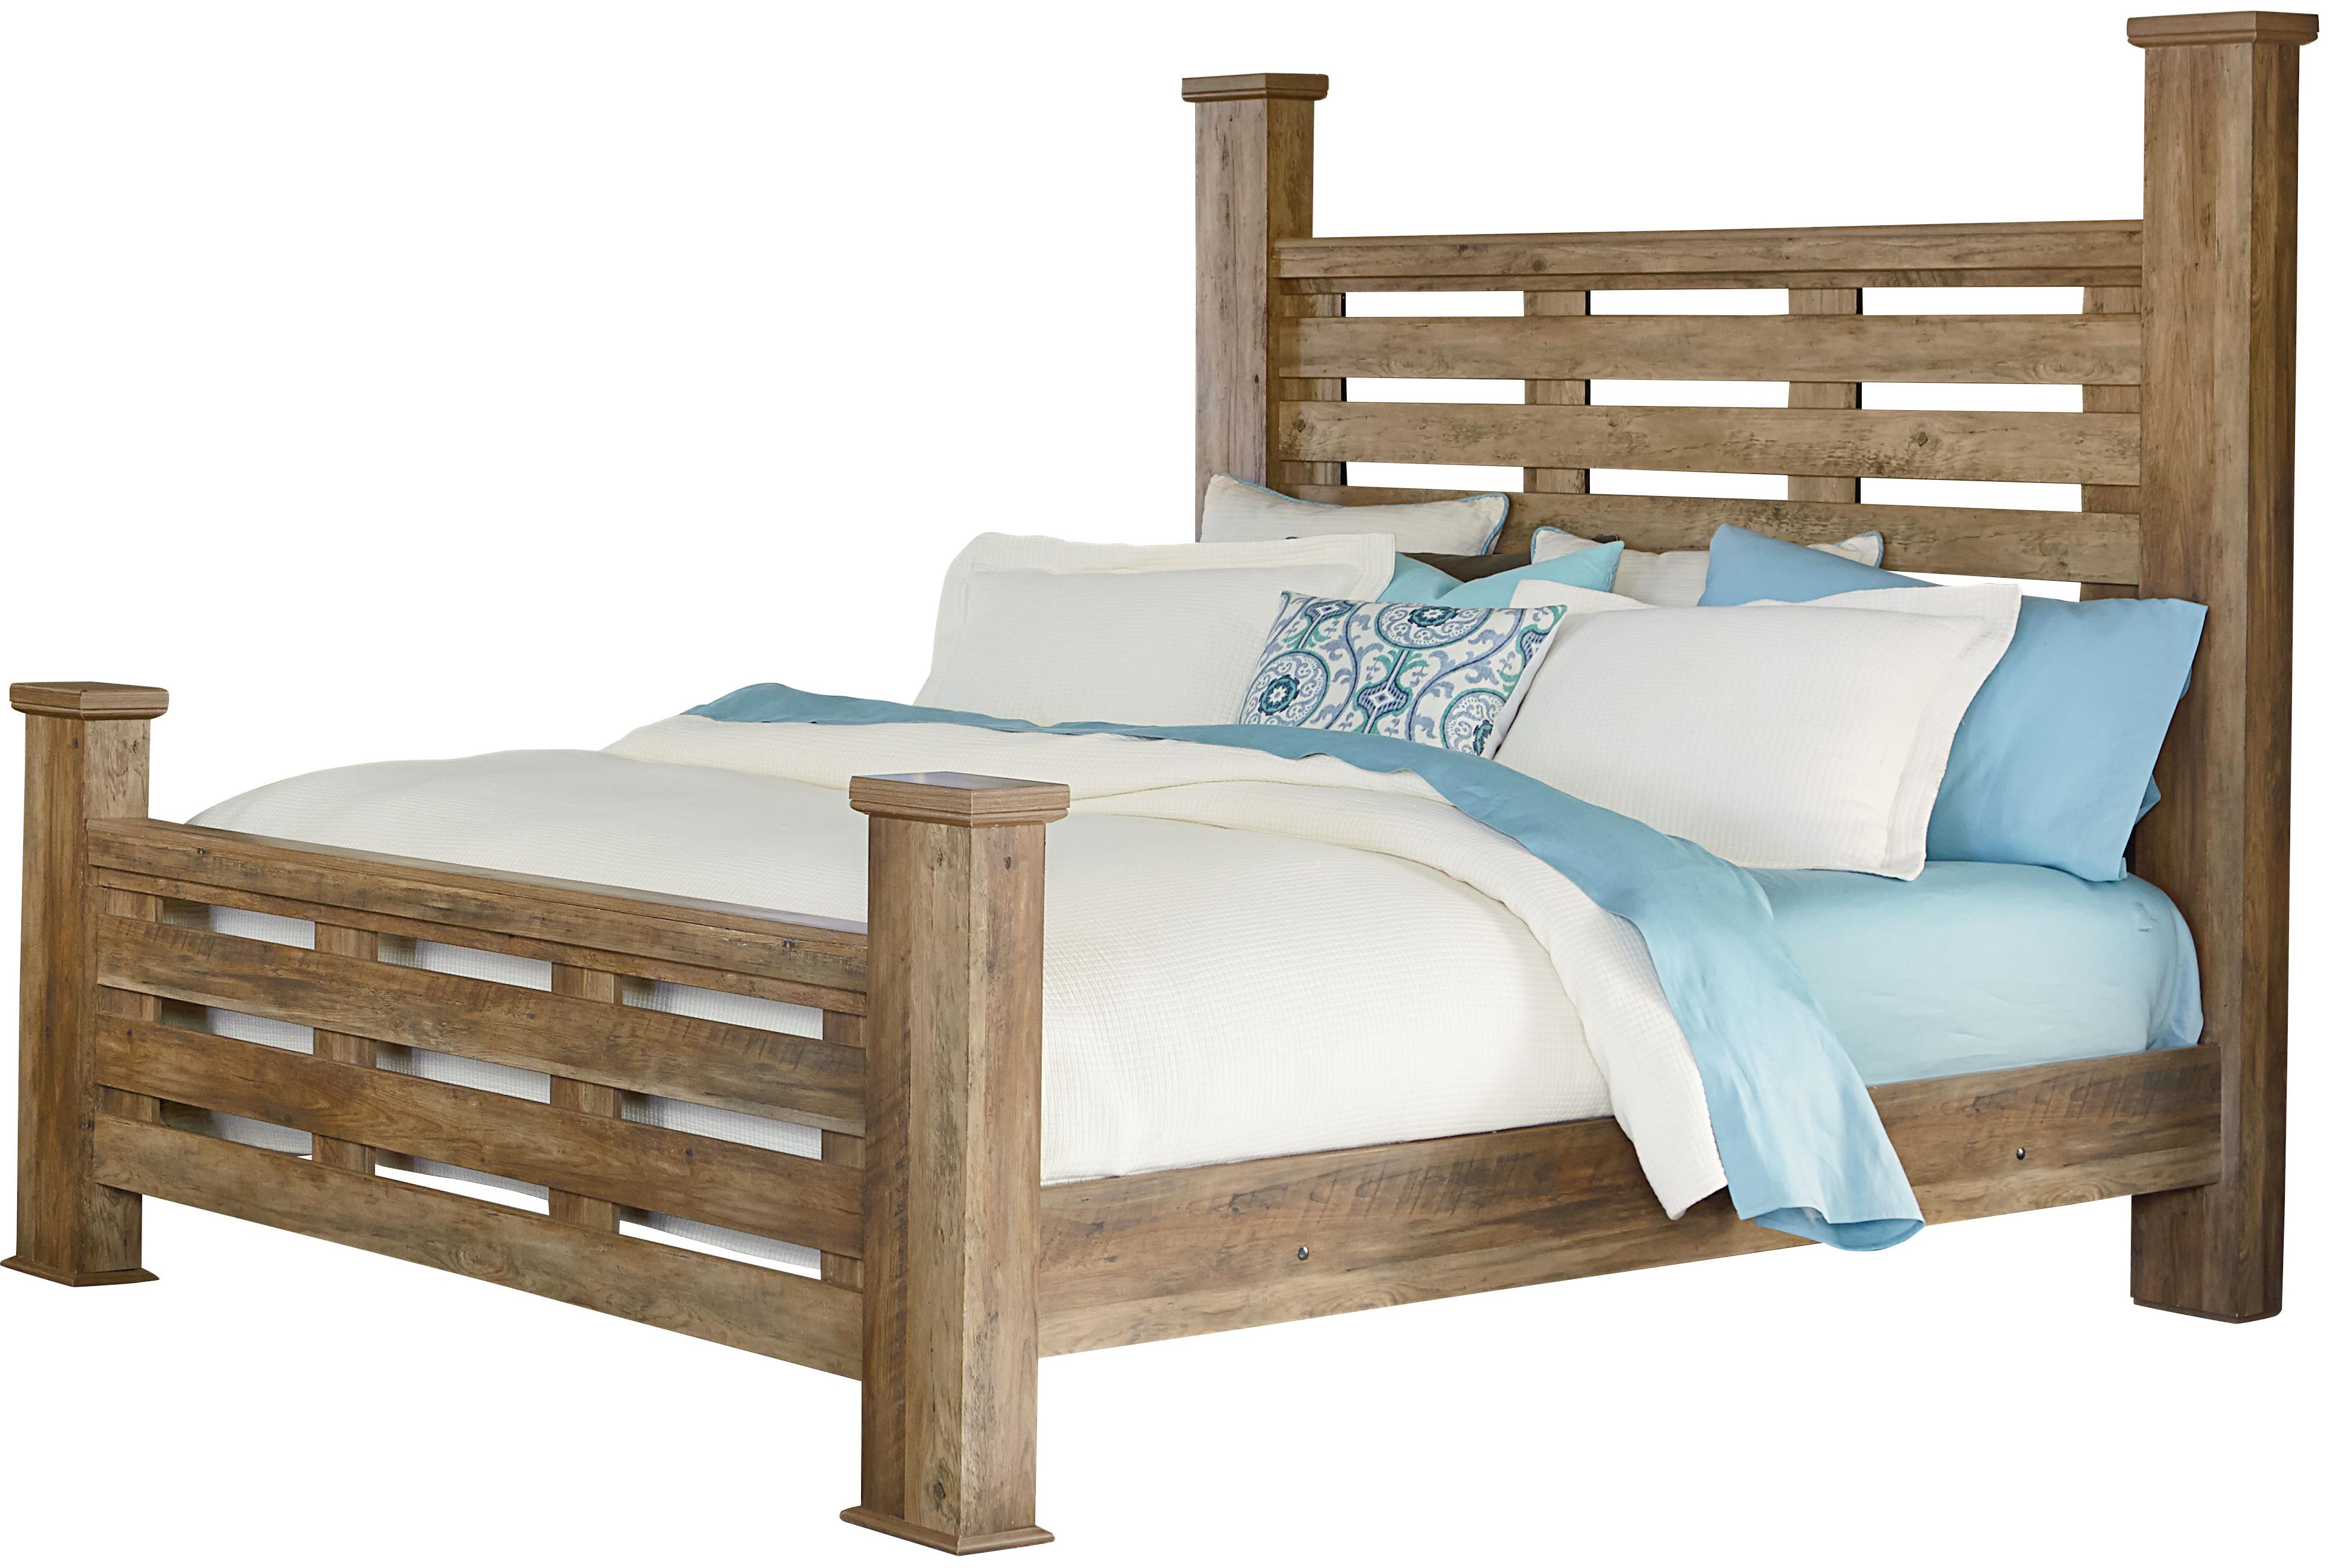 Standard Furniture Montana Queen Poster Bed Item Number 52451 61 80   Standard Furniture Montana Rustic. Montana Bedroom Furniture Collection